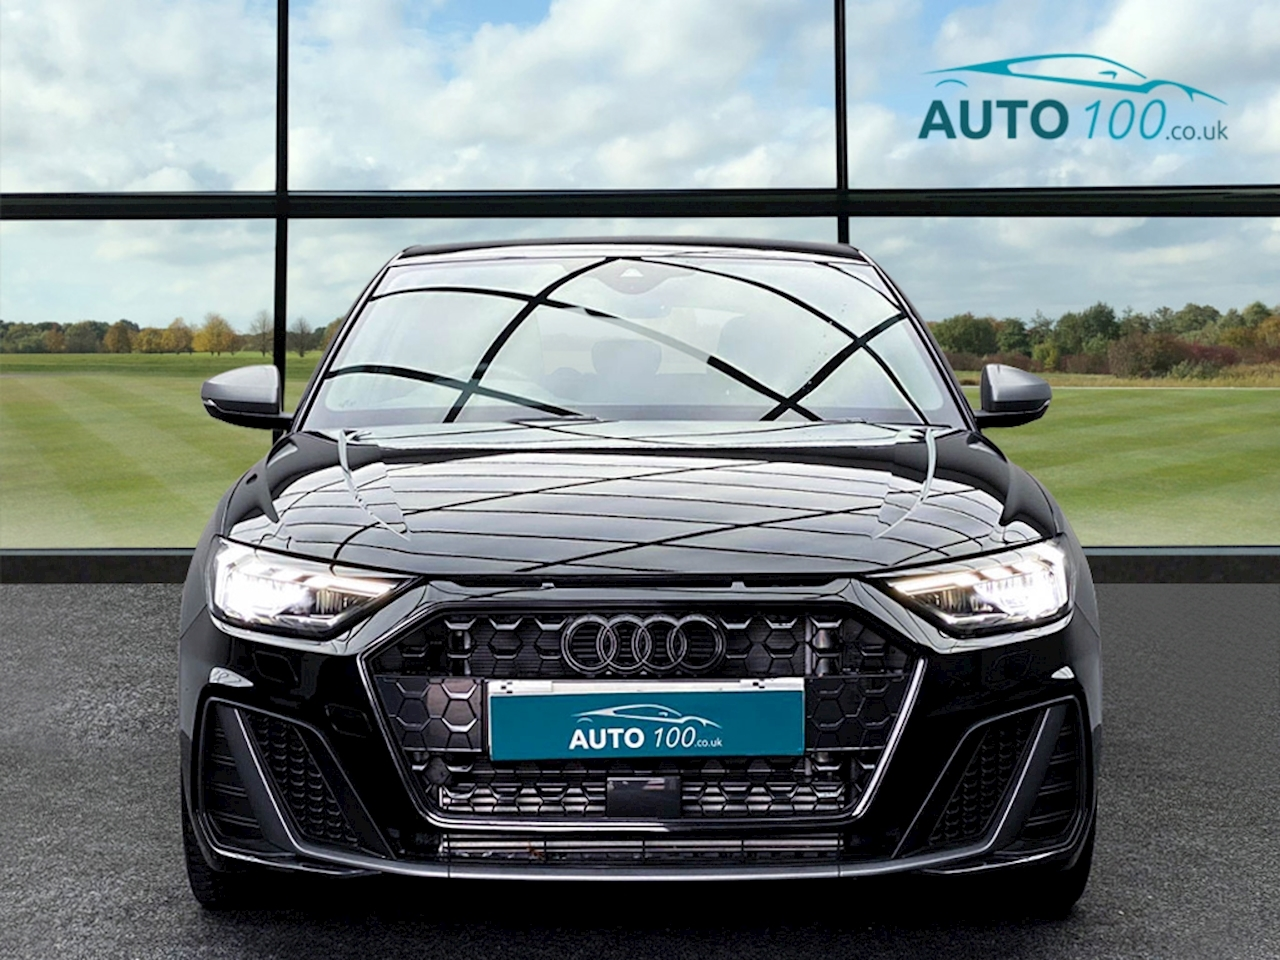 Audi A1 S line Competition Sportback 2.0 S Tronic Petrol